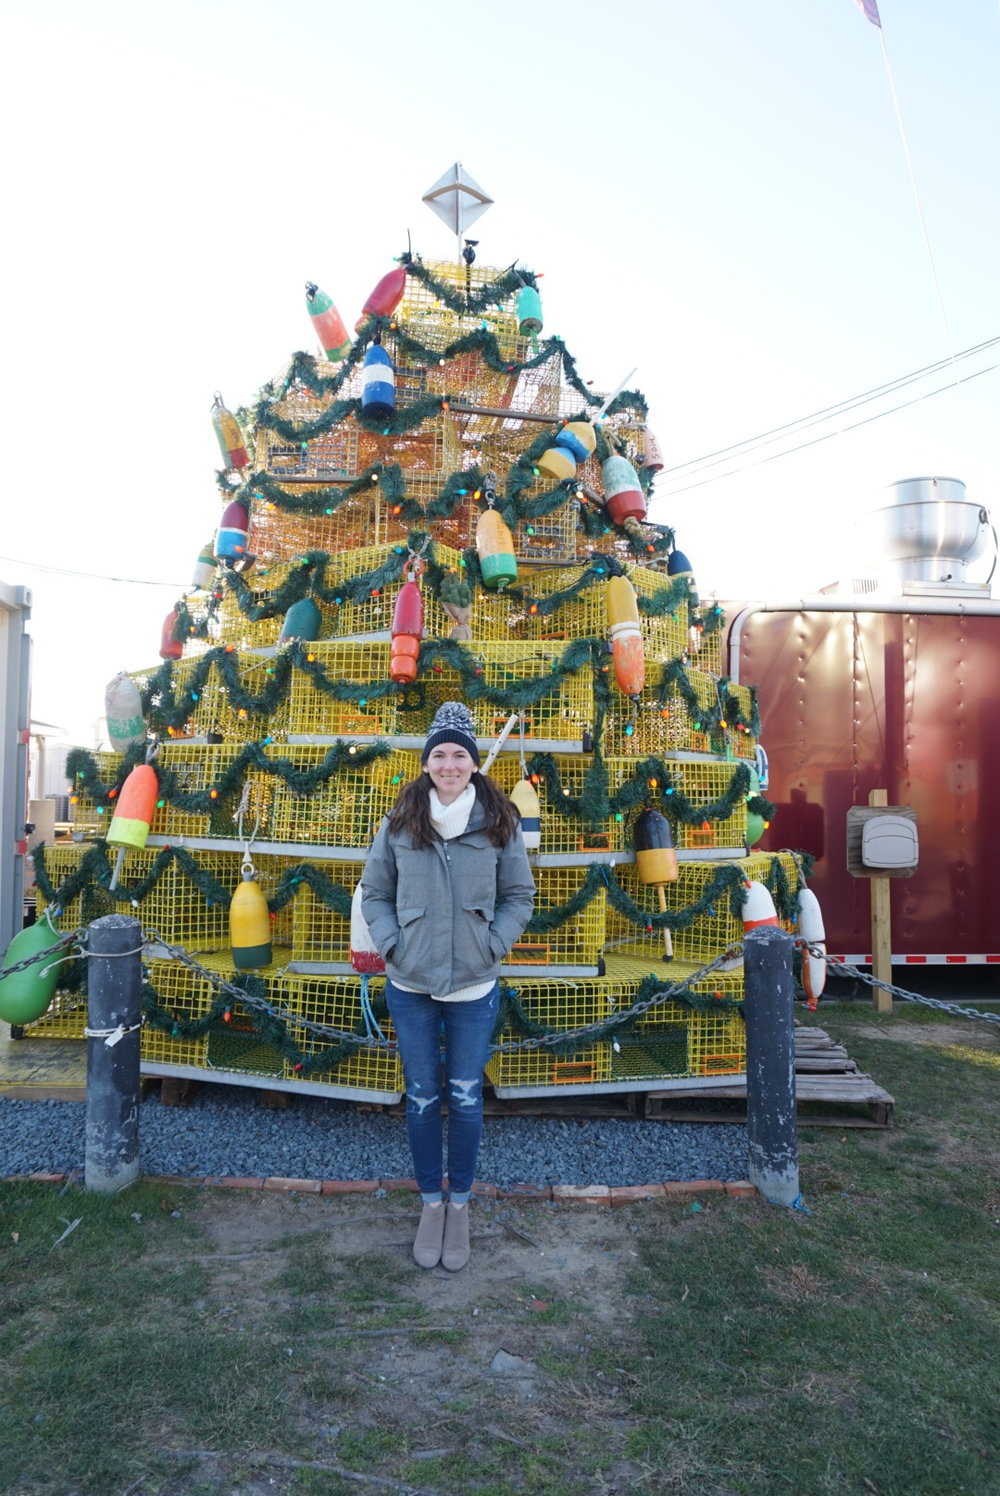 Standing in front of the lobster trap tree on Long Wharf in Newport. It's more pretty at dusk with lights on!